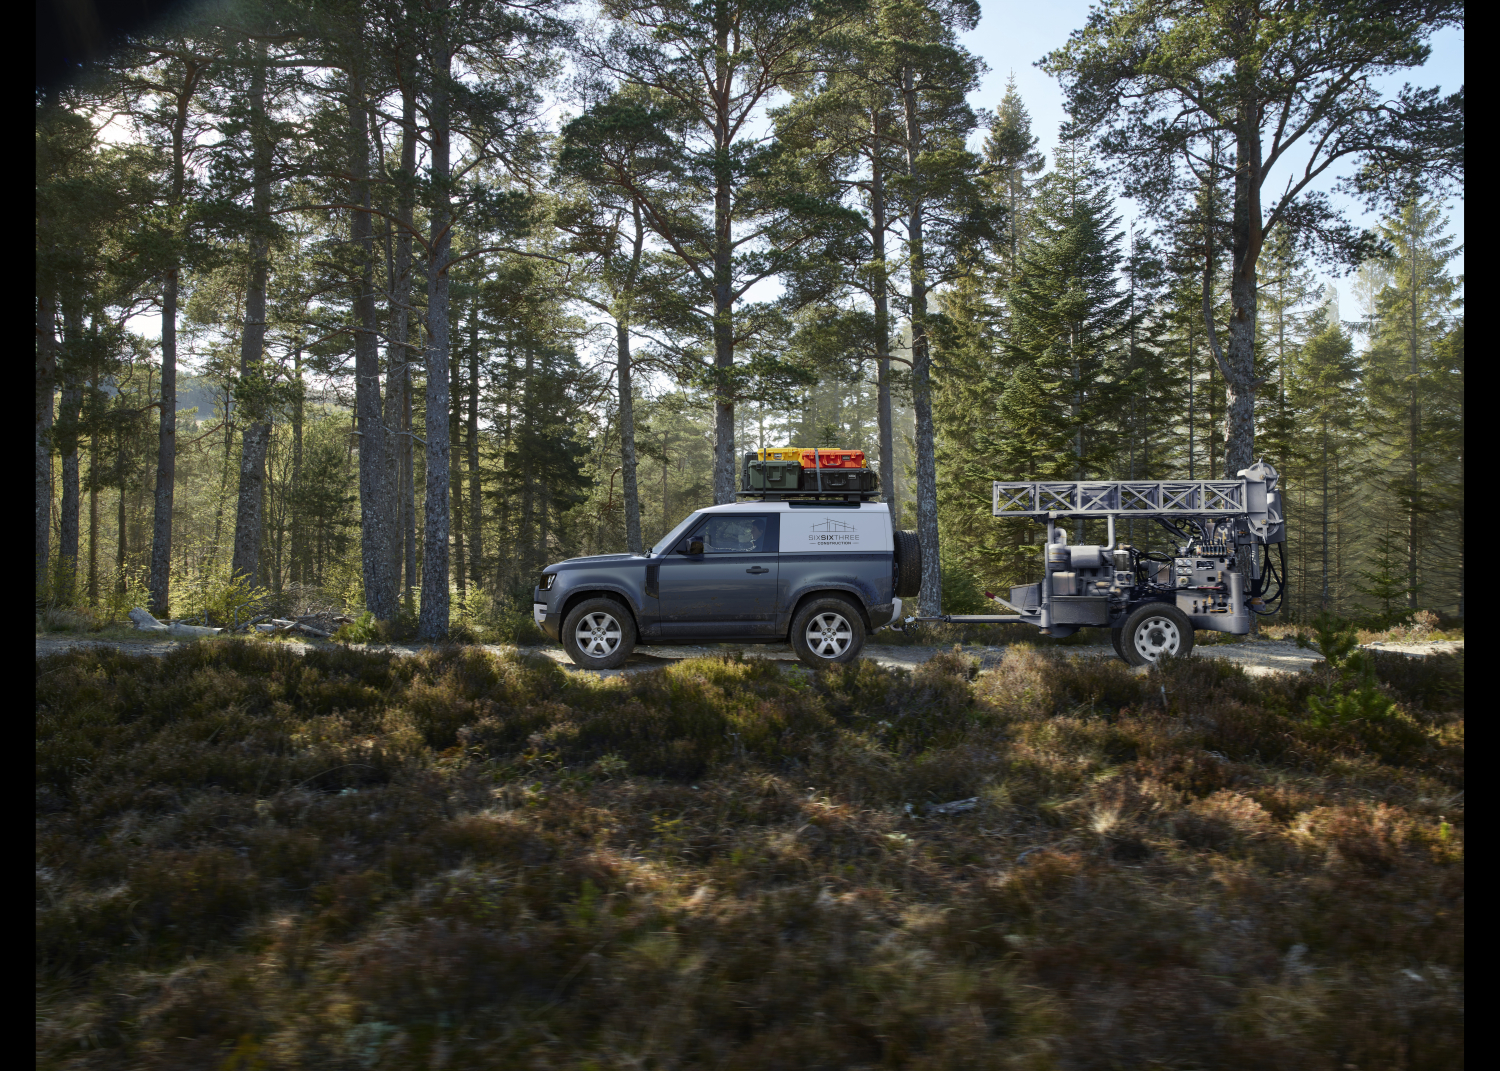 Land Rover Defender Hard Top: most Rugged and Durable Commercial Vehicle on Sale now - Image 3